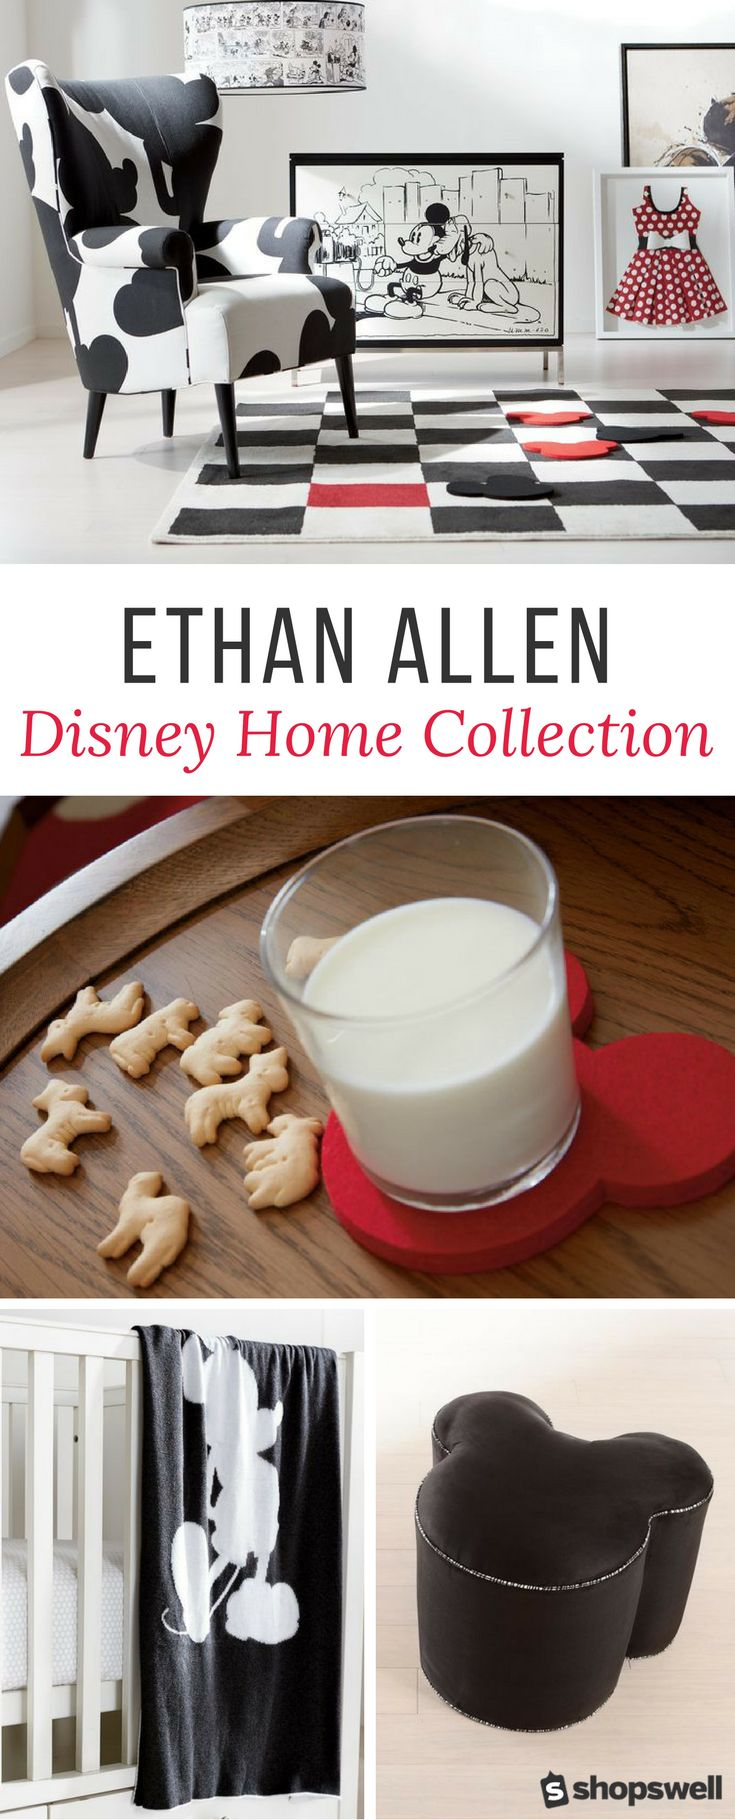 Ethan allen crib for sale - Introducing The Ethan Allen Disney Collection